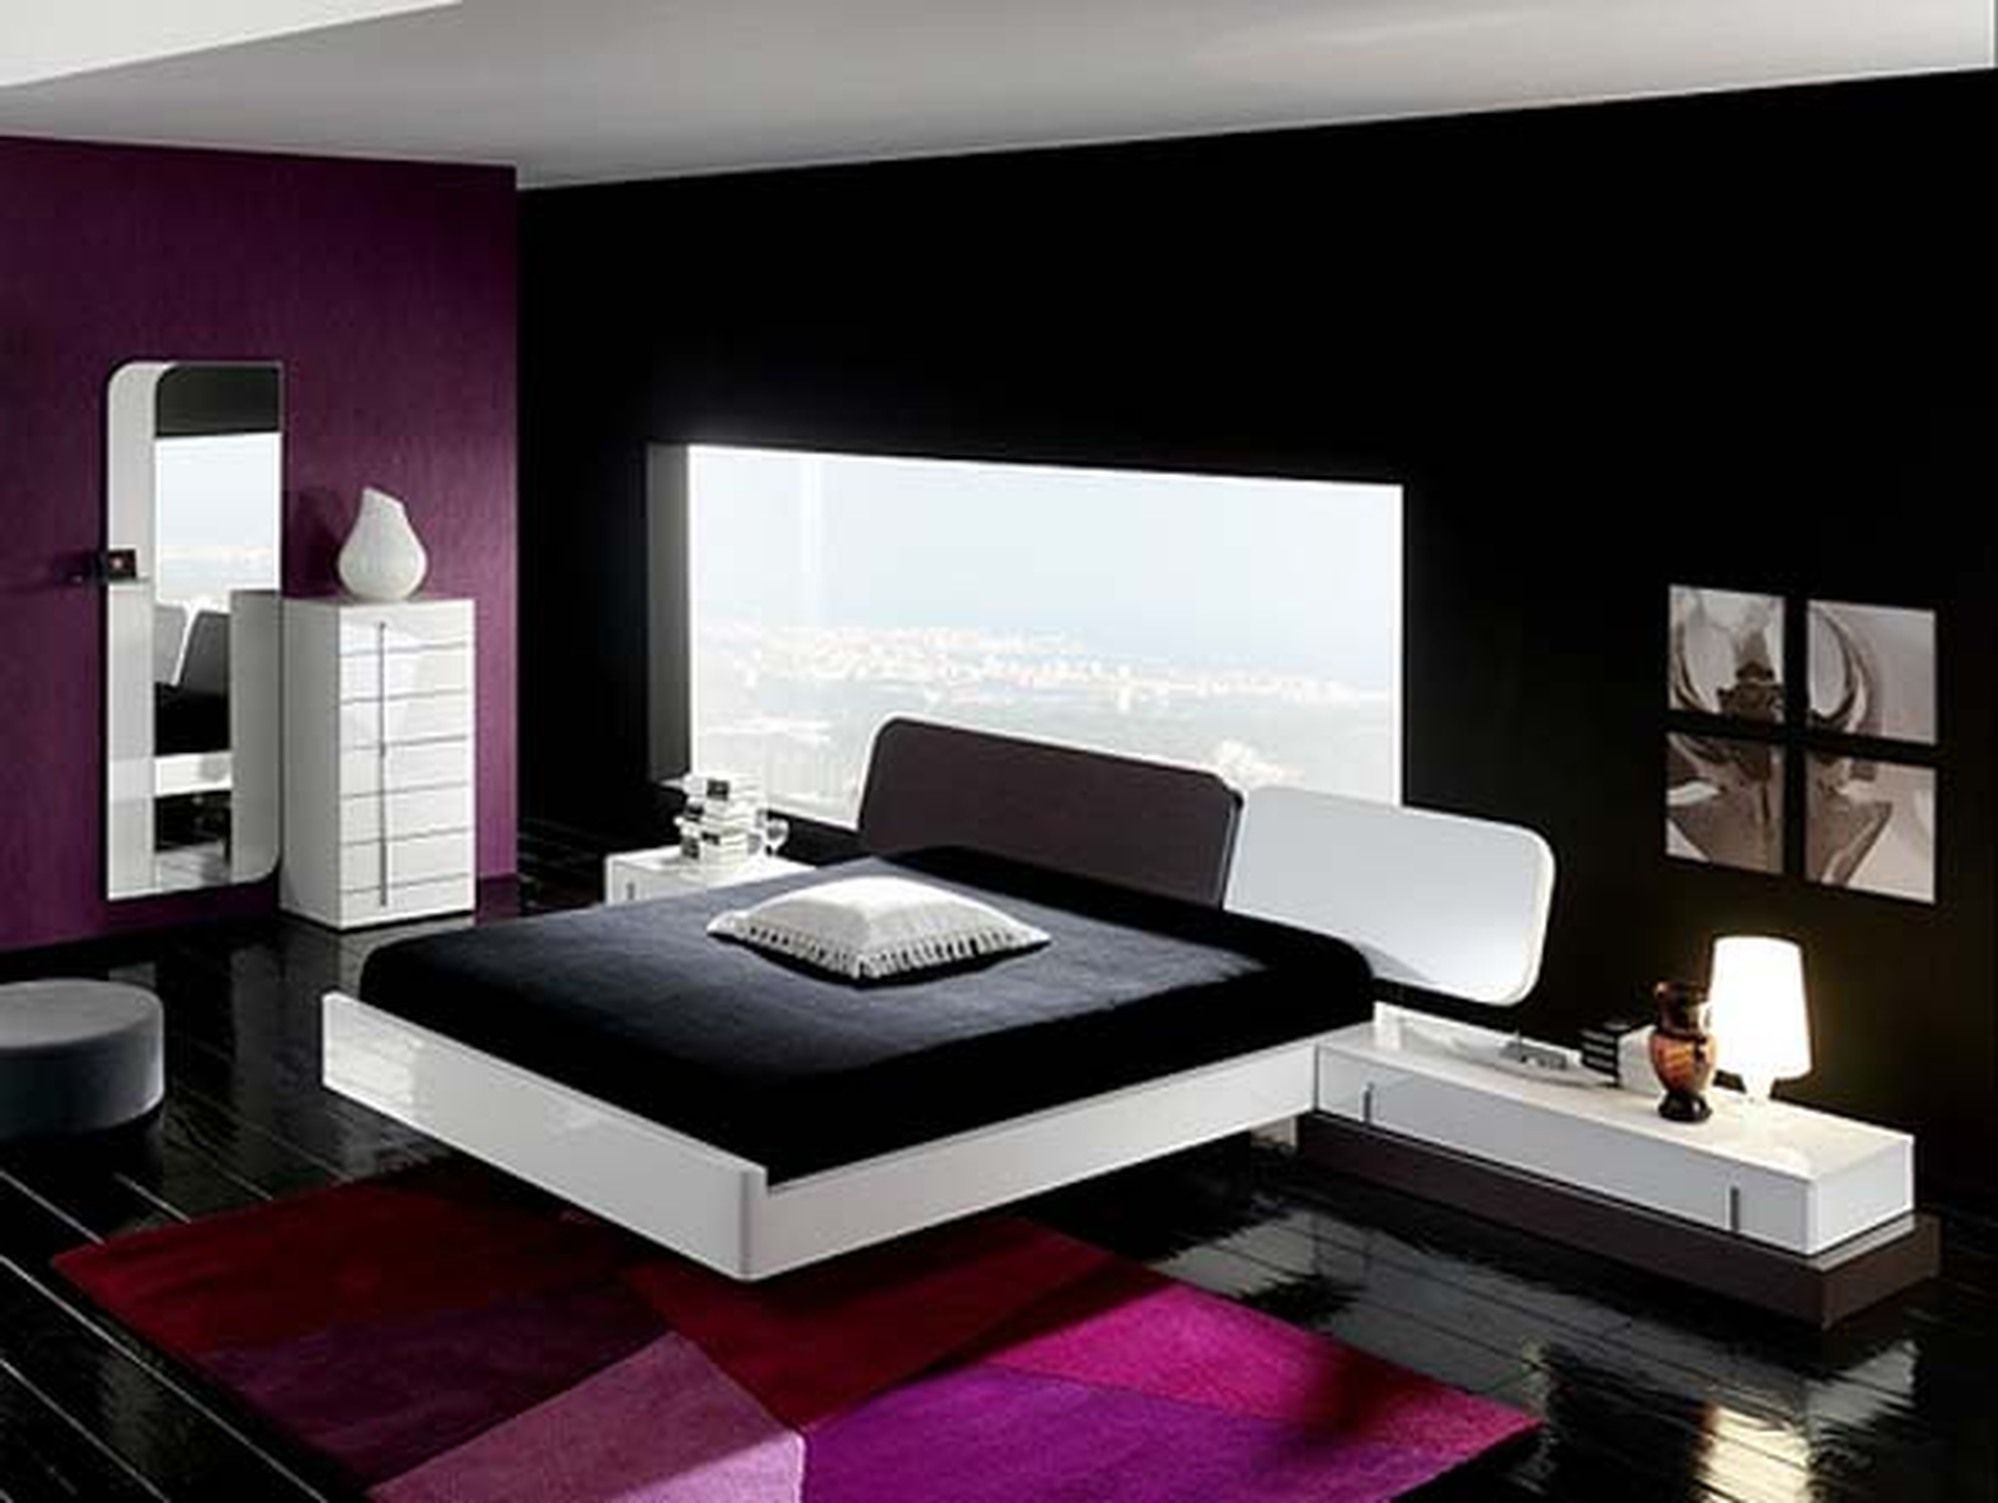 Rooms Painted Black Hitech Bedroom  Google Search  Reference For My Room Ideas